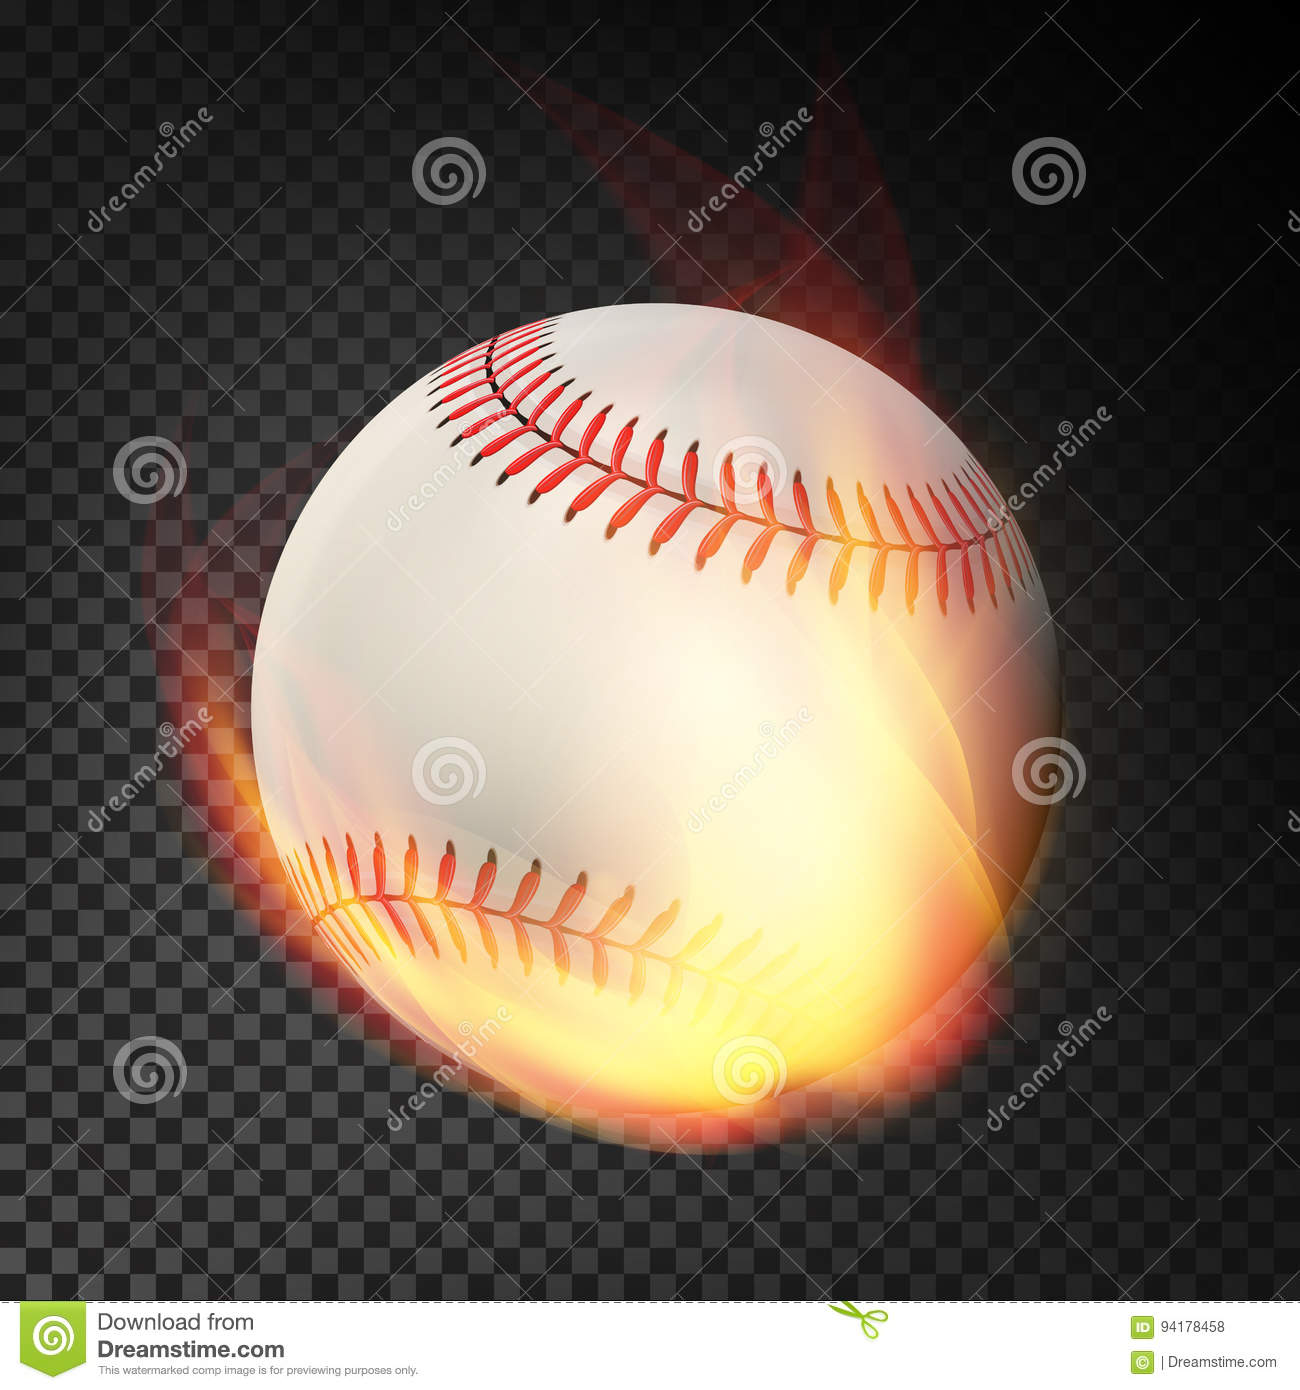 Flaming Realistic Baseball Ball On Fire Flying Through The Air. Burning Ball On Transparent Background